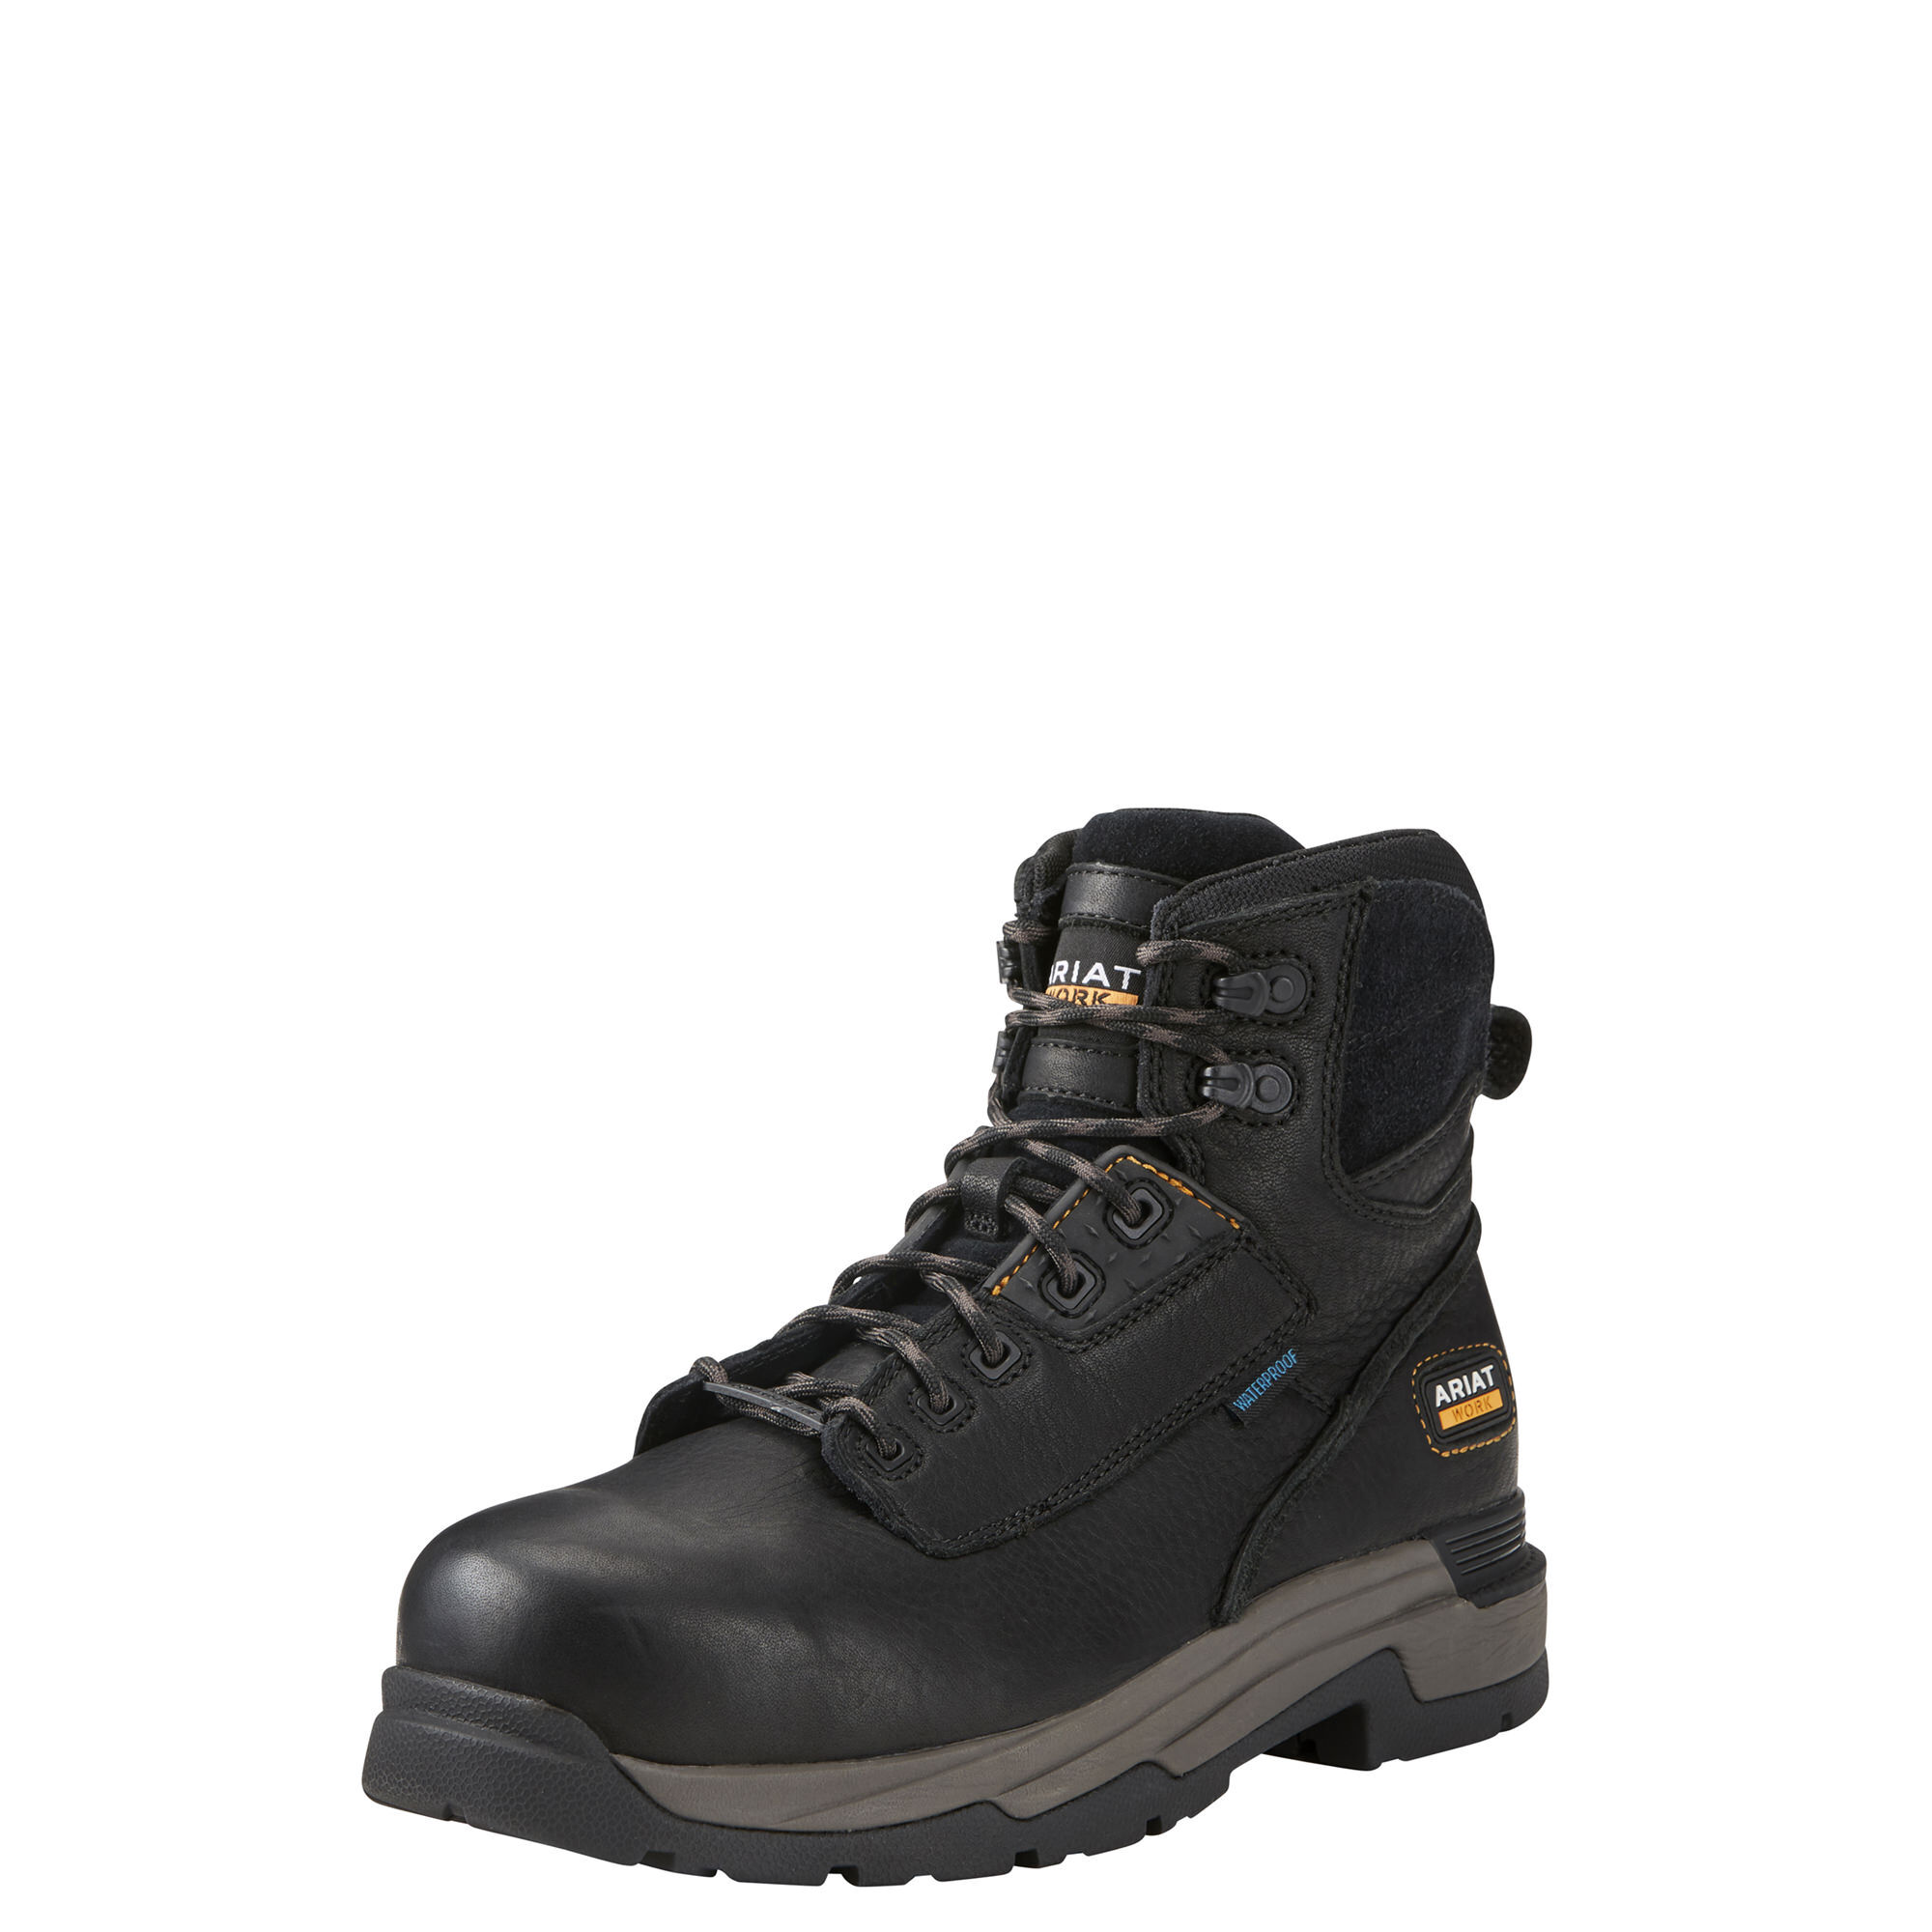 Men's Work Boot Outlet | Ariat